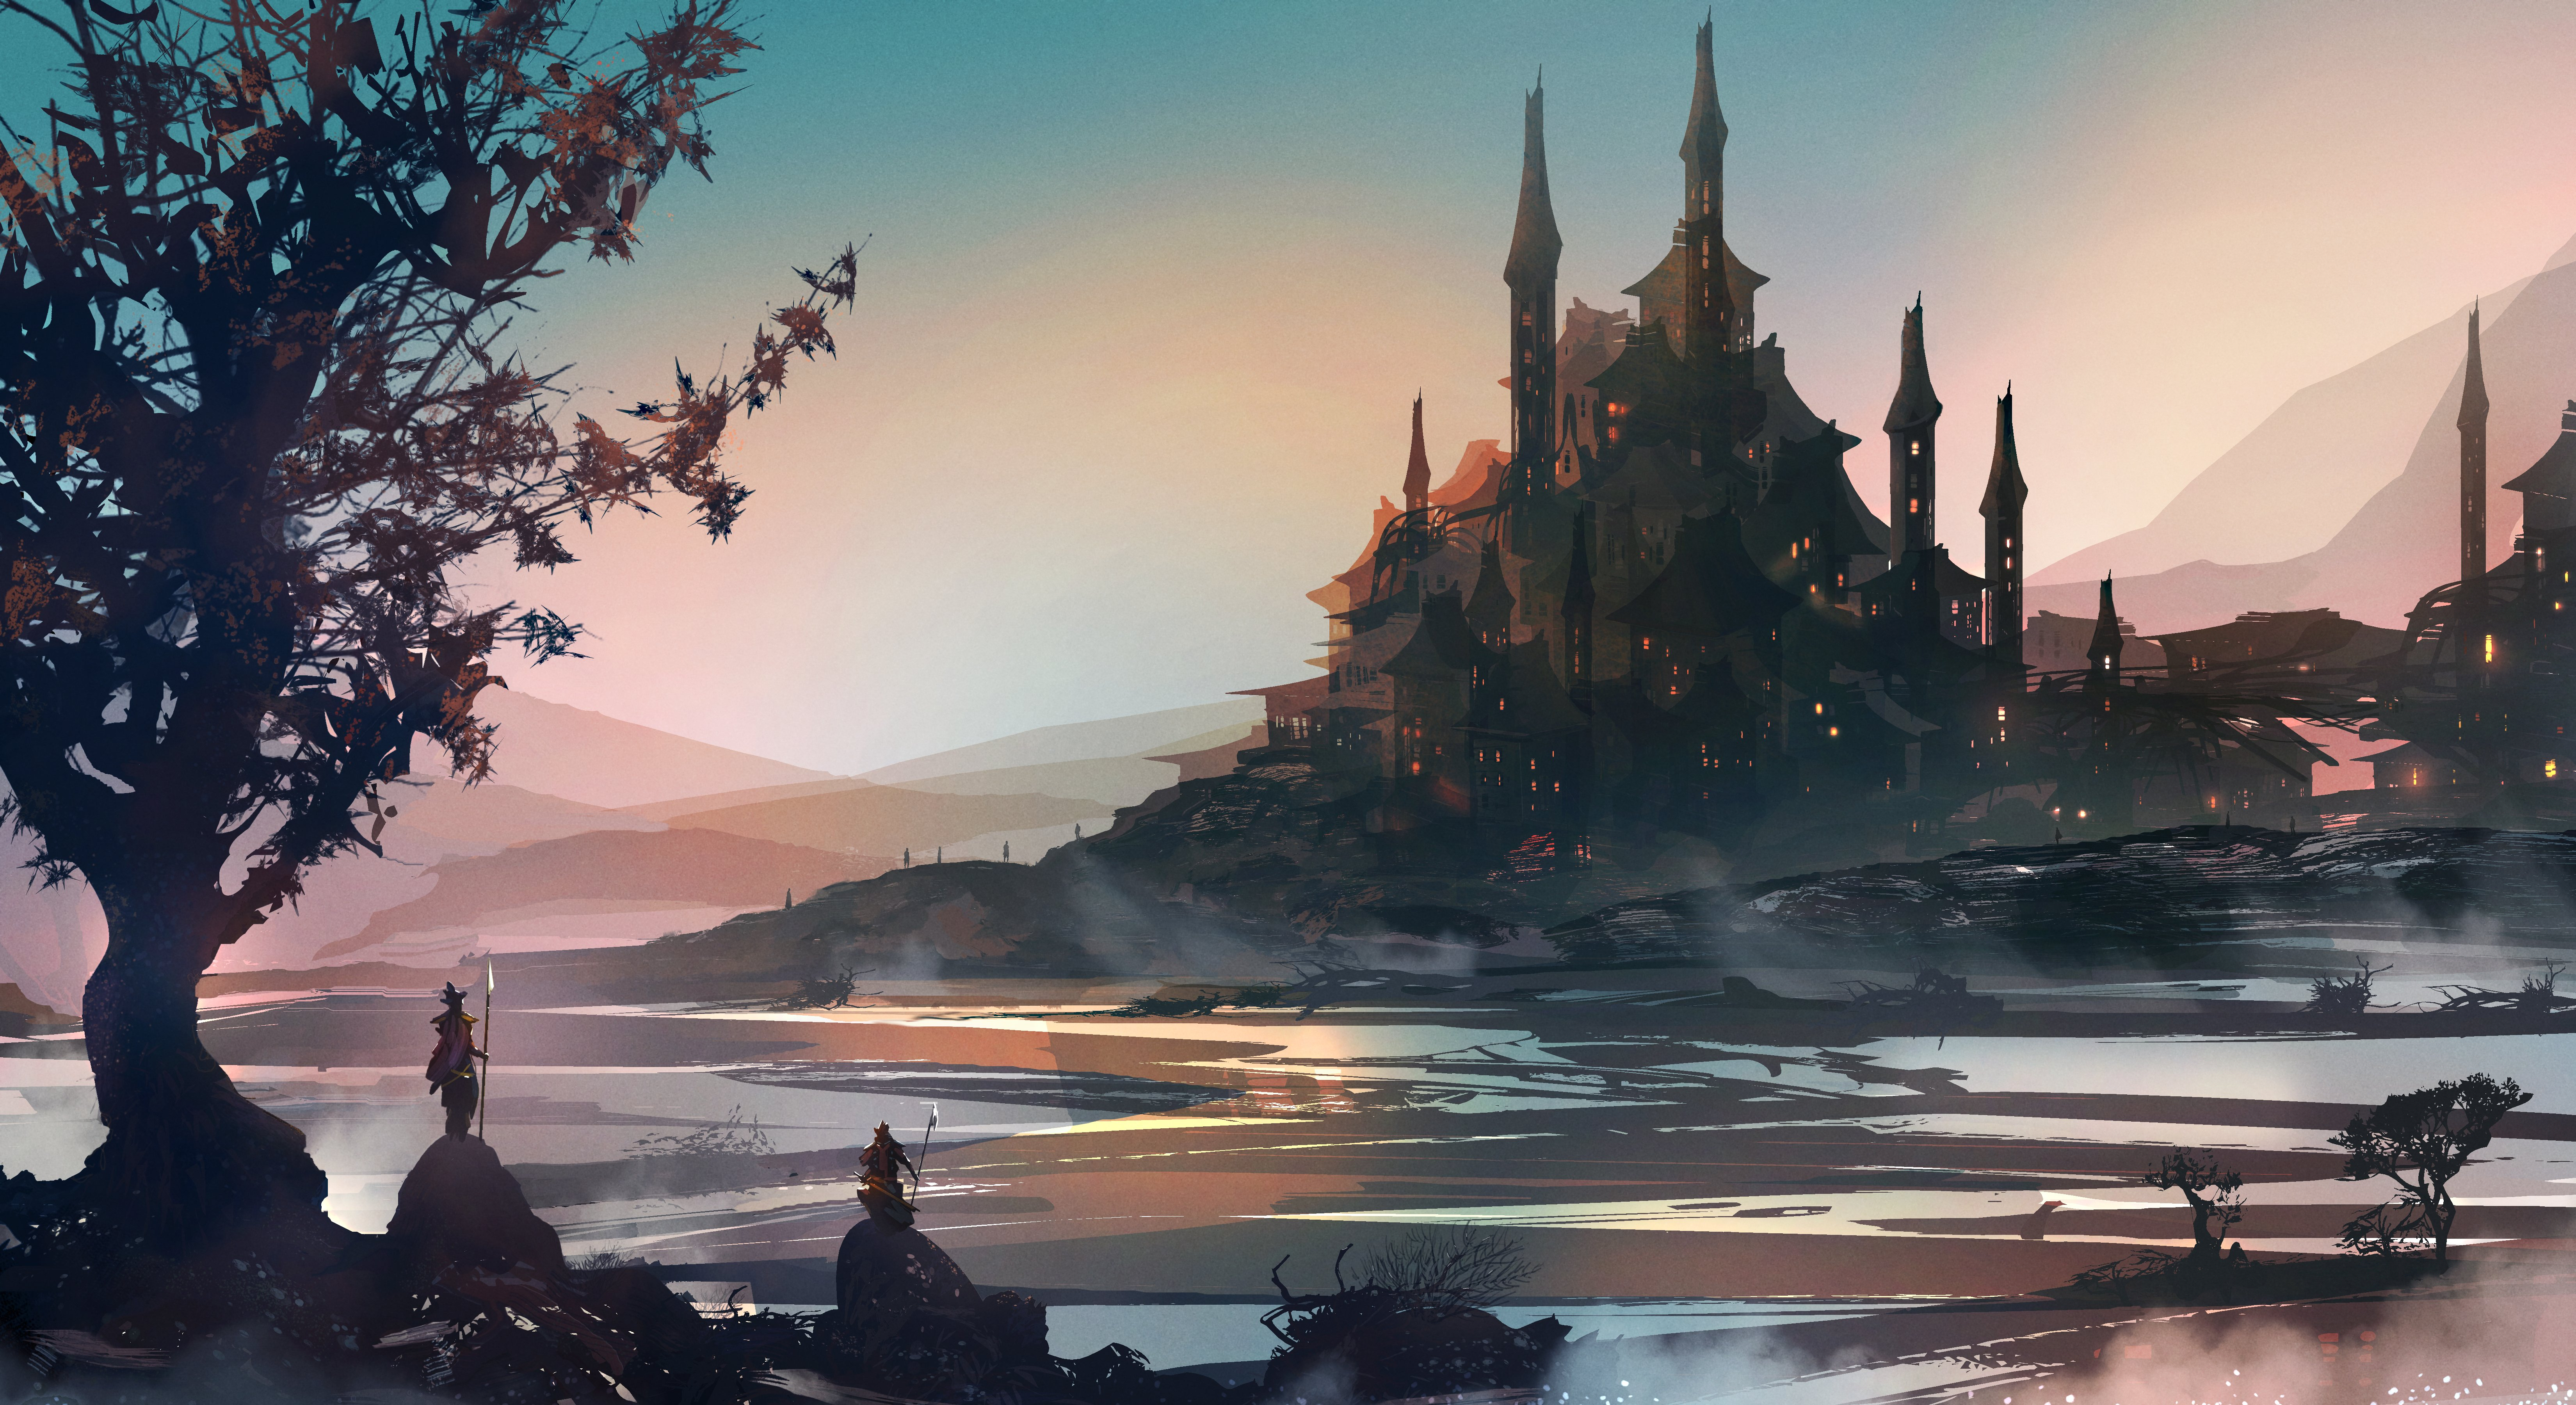 Fantasy knight art background 5k hd artist 4k wallpapers images backgrounds photos and pictures - Fantasy background ...